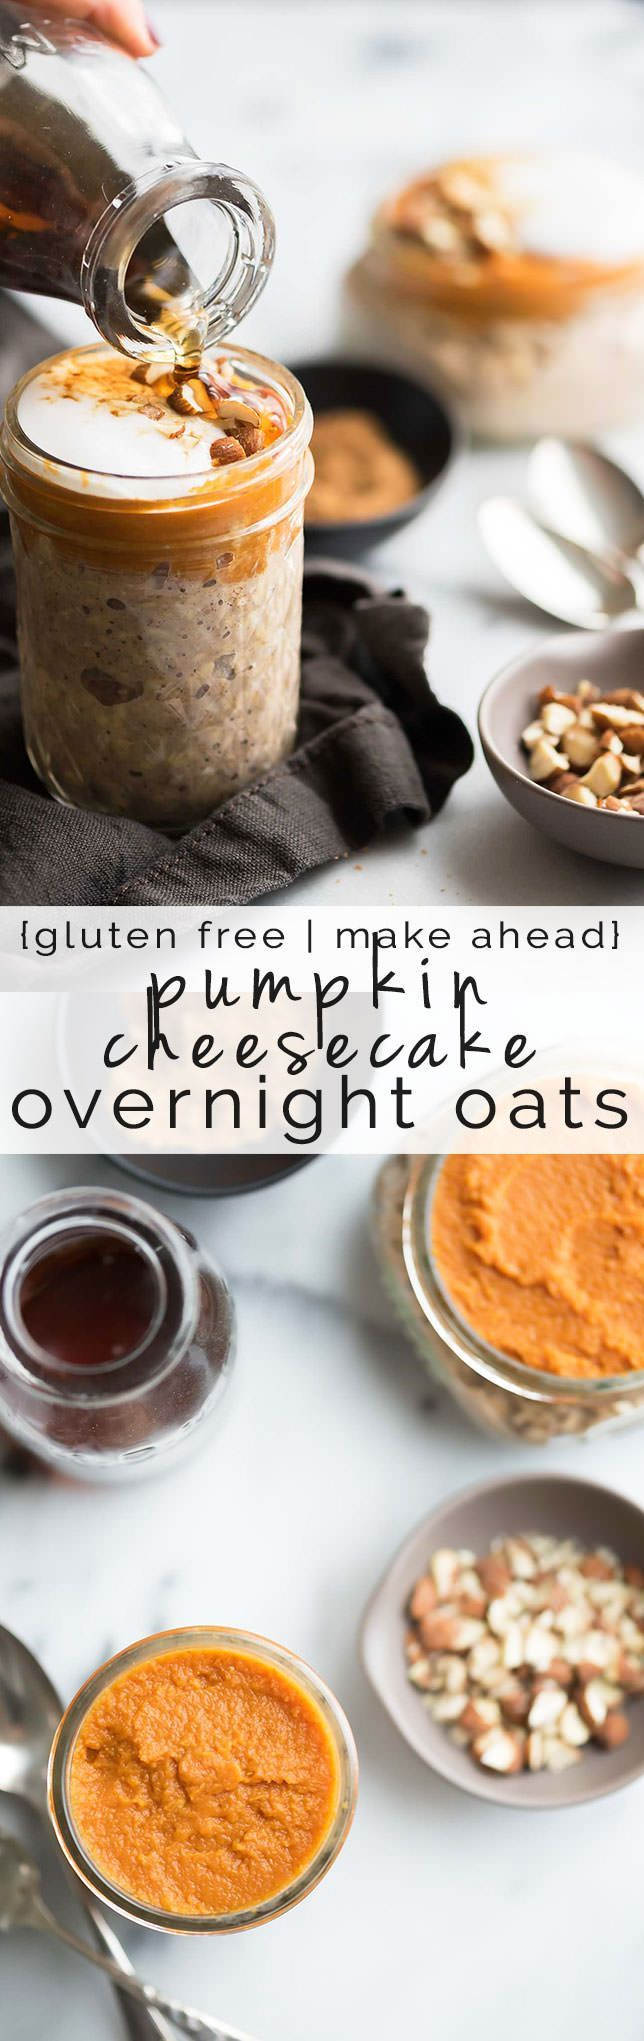 Overnight Oats - a step up from the basic overnight oats in a jar ...